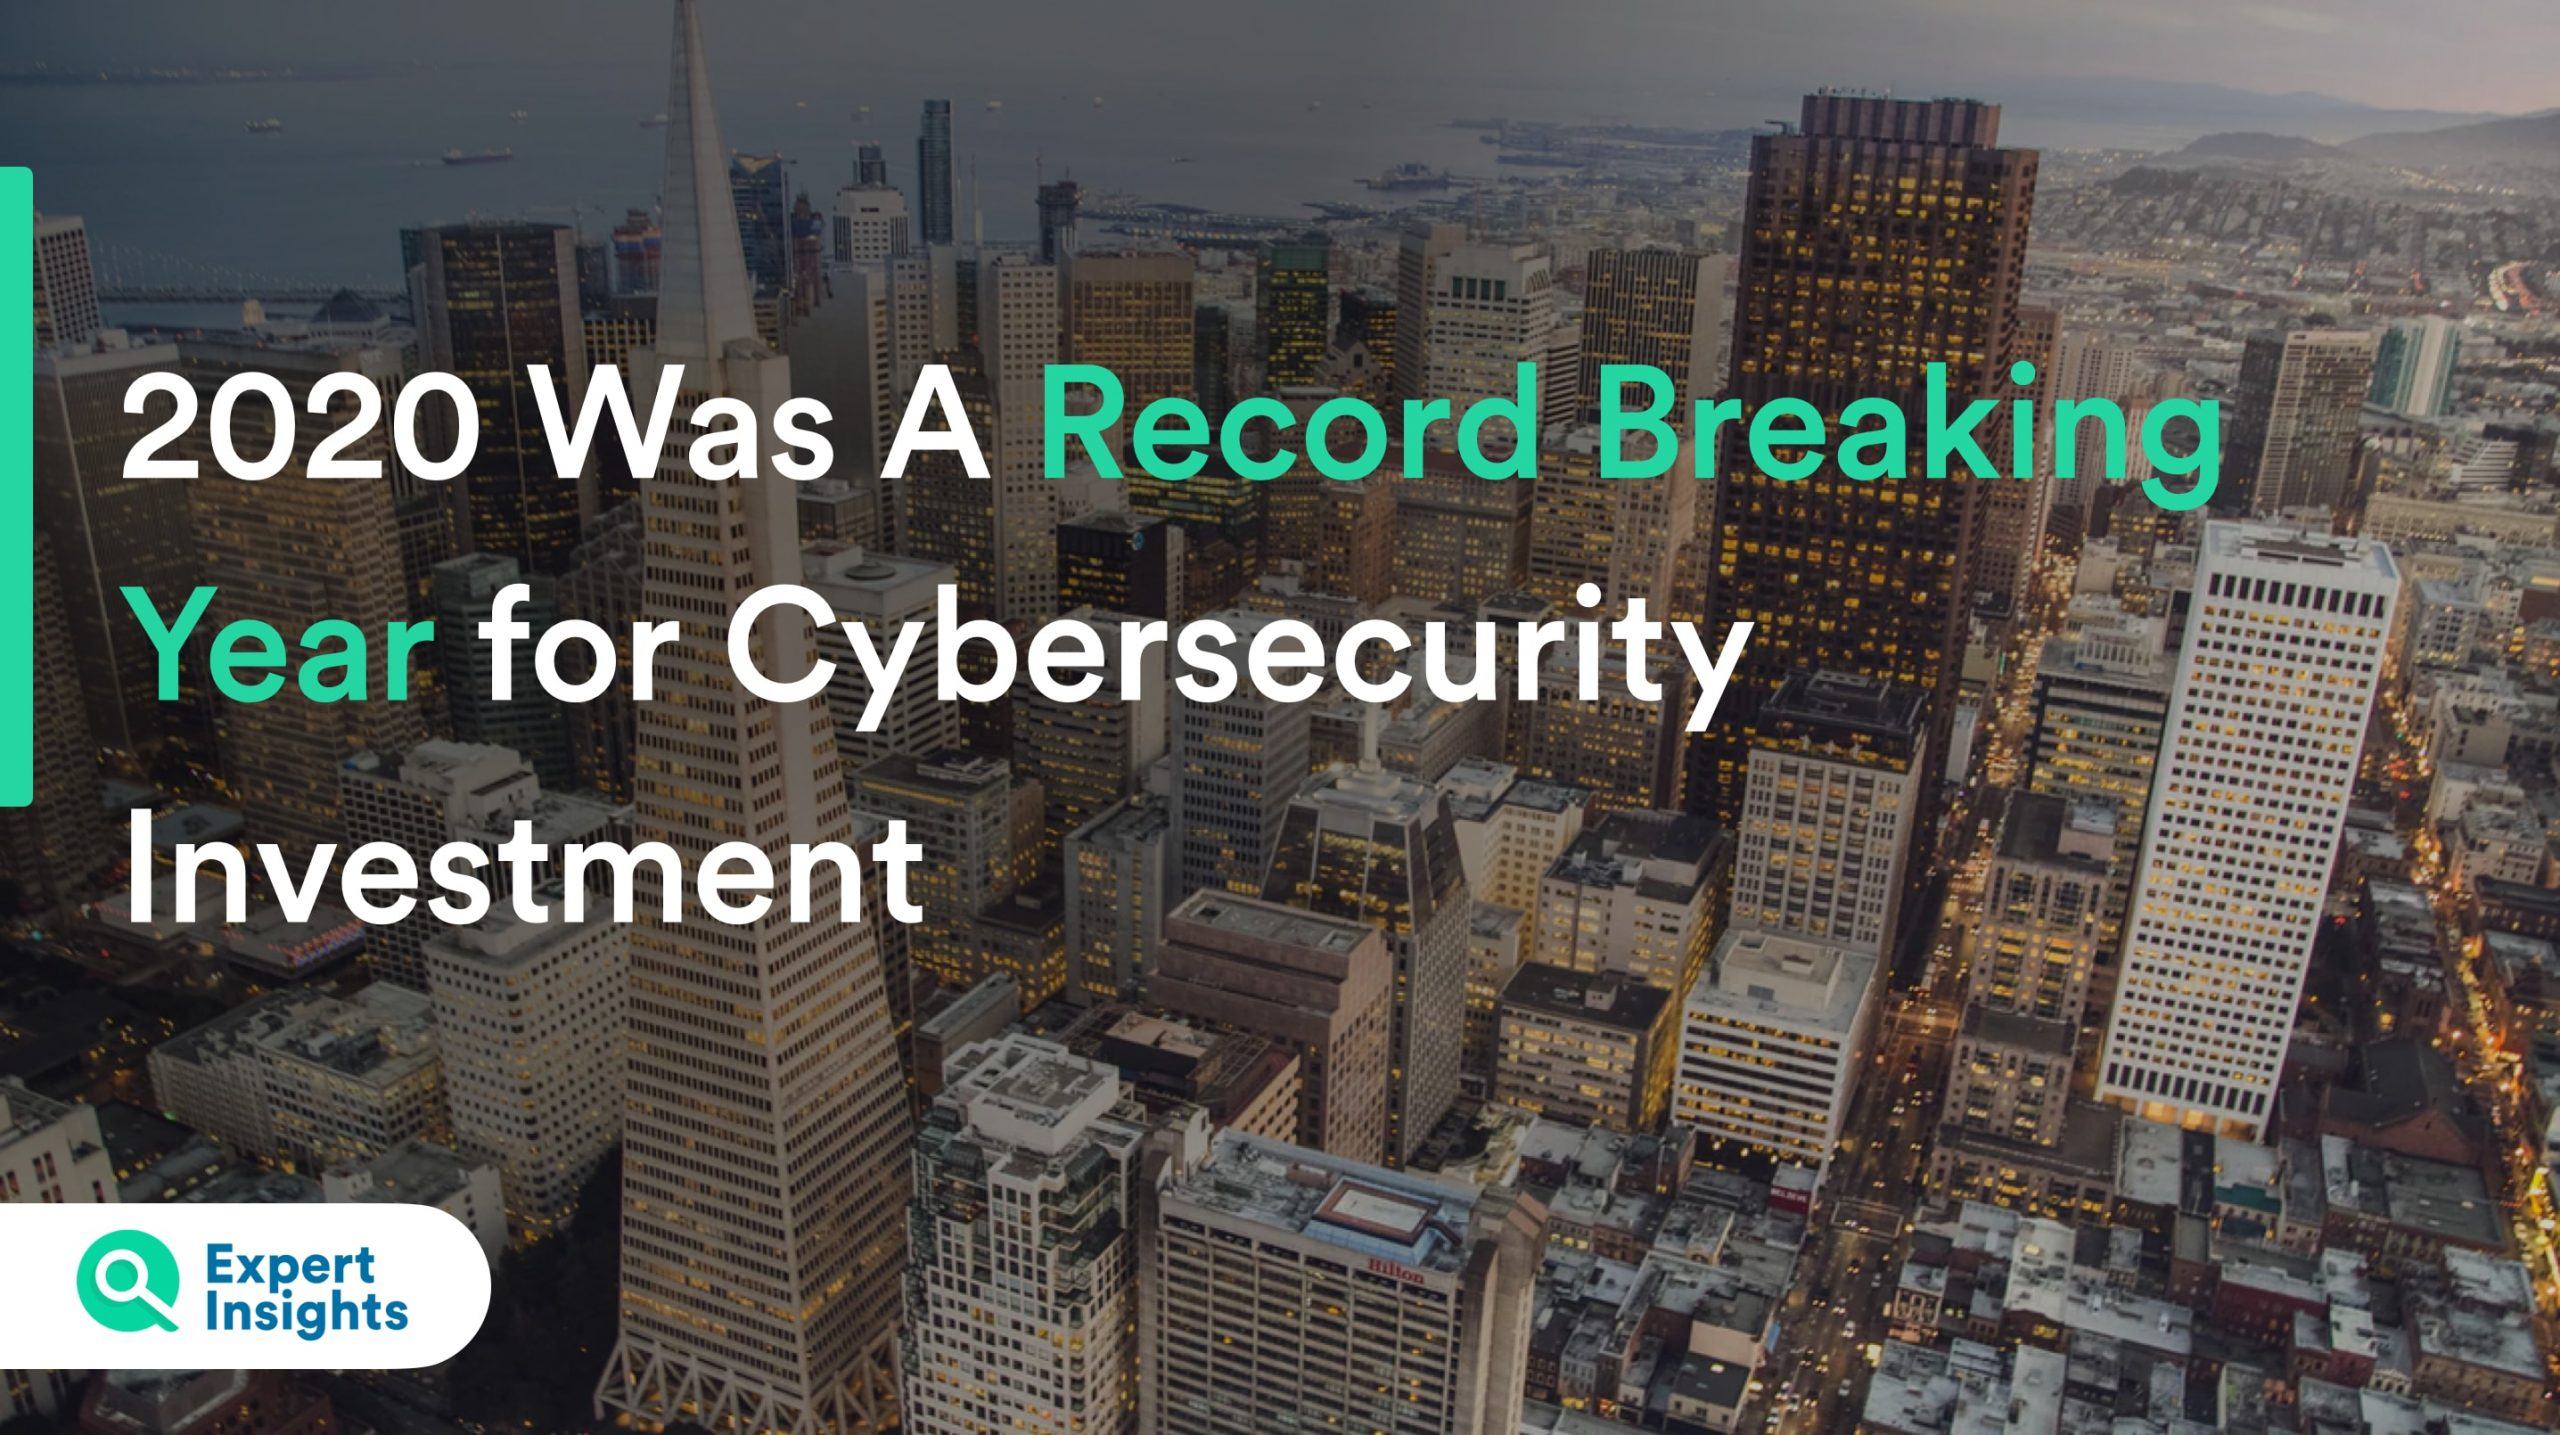 Cybersecurity Sees Explosion In Investment Over 2020